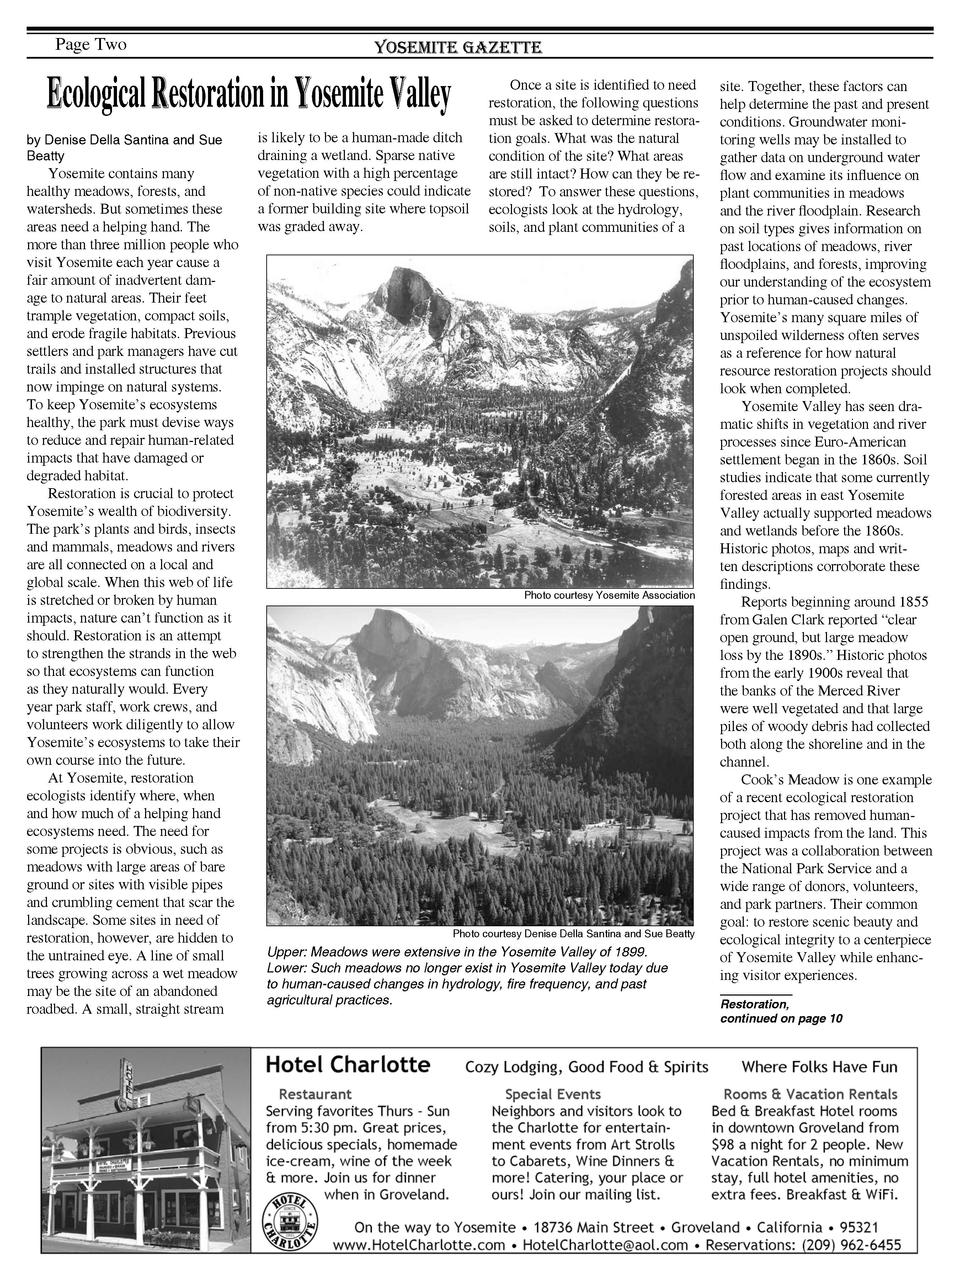 Page Two  Yosemite Gazette  Ecological Restoration in Yosemite Valley by Denise Della Santina and Sue Beatty  Yosemite con...